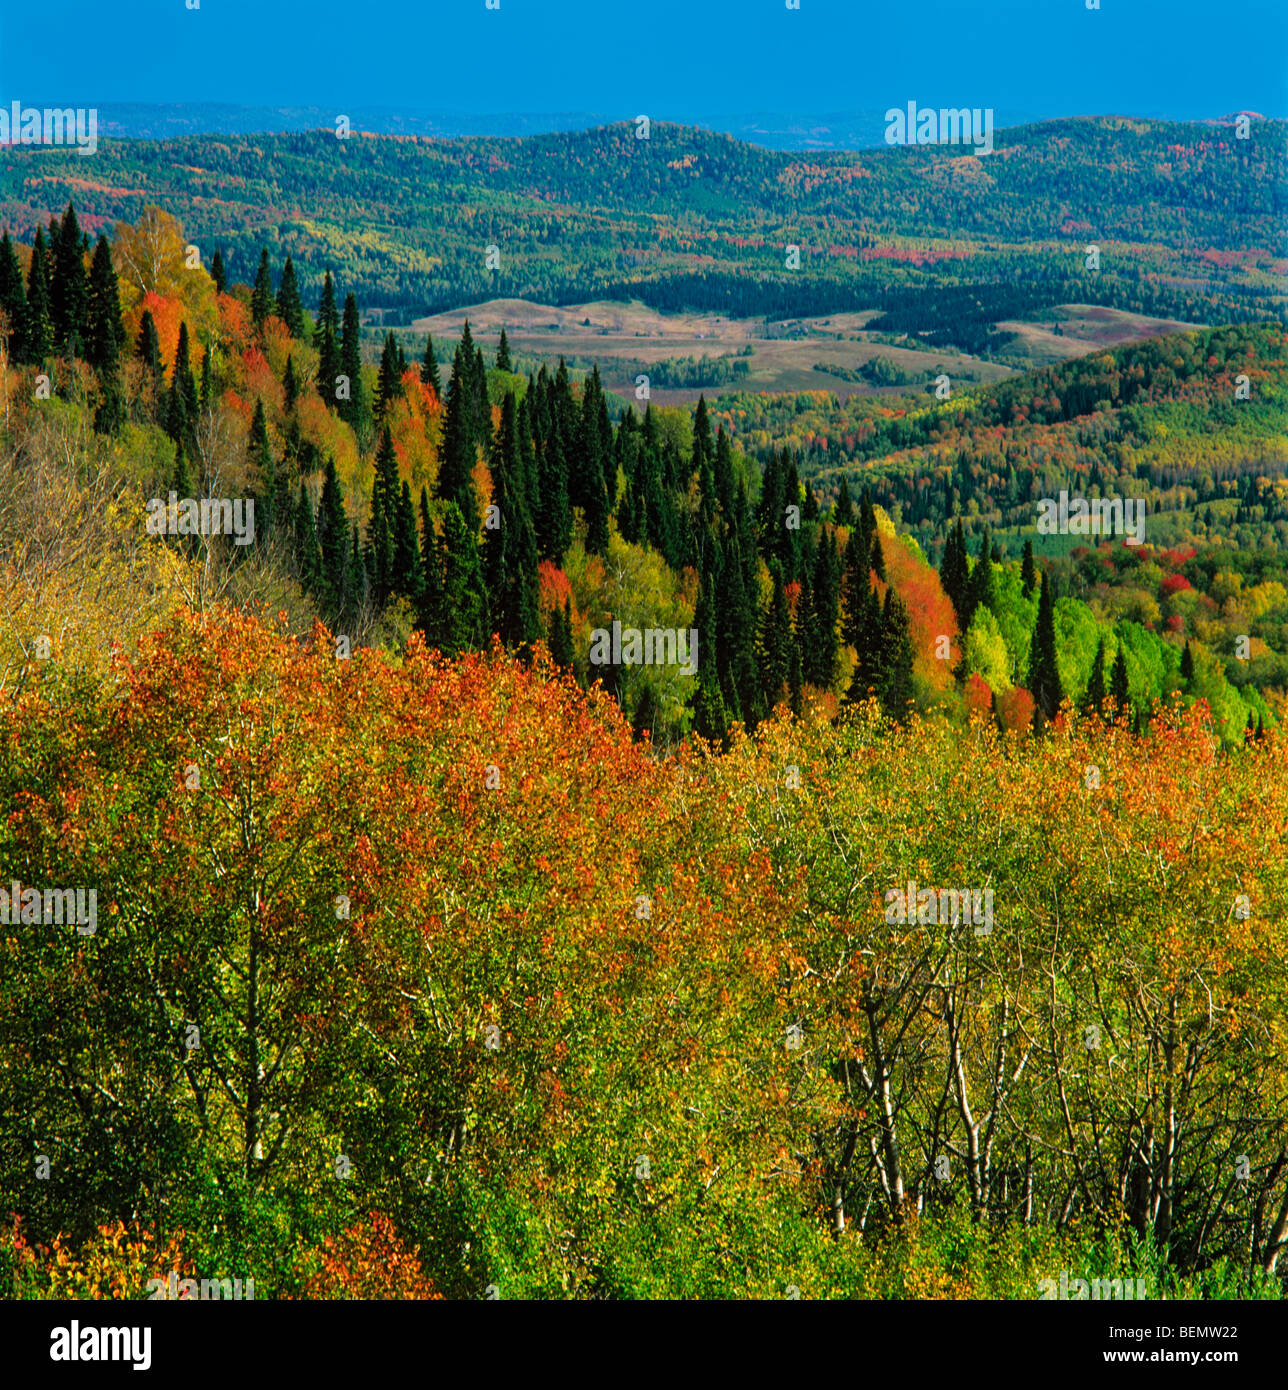 Autumn taiga in the Altaian foothills. Siberia, Russia - Stock Image